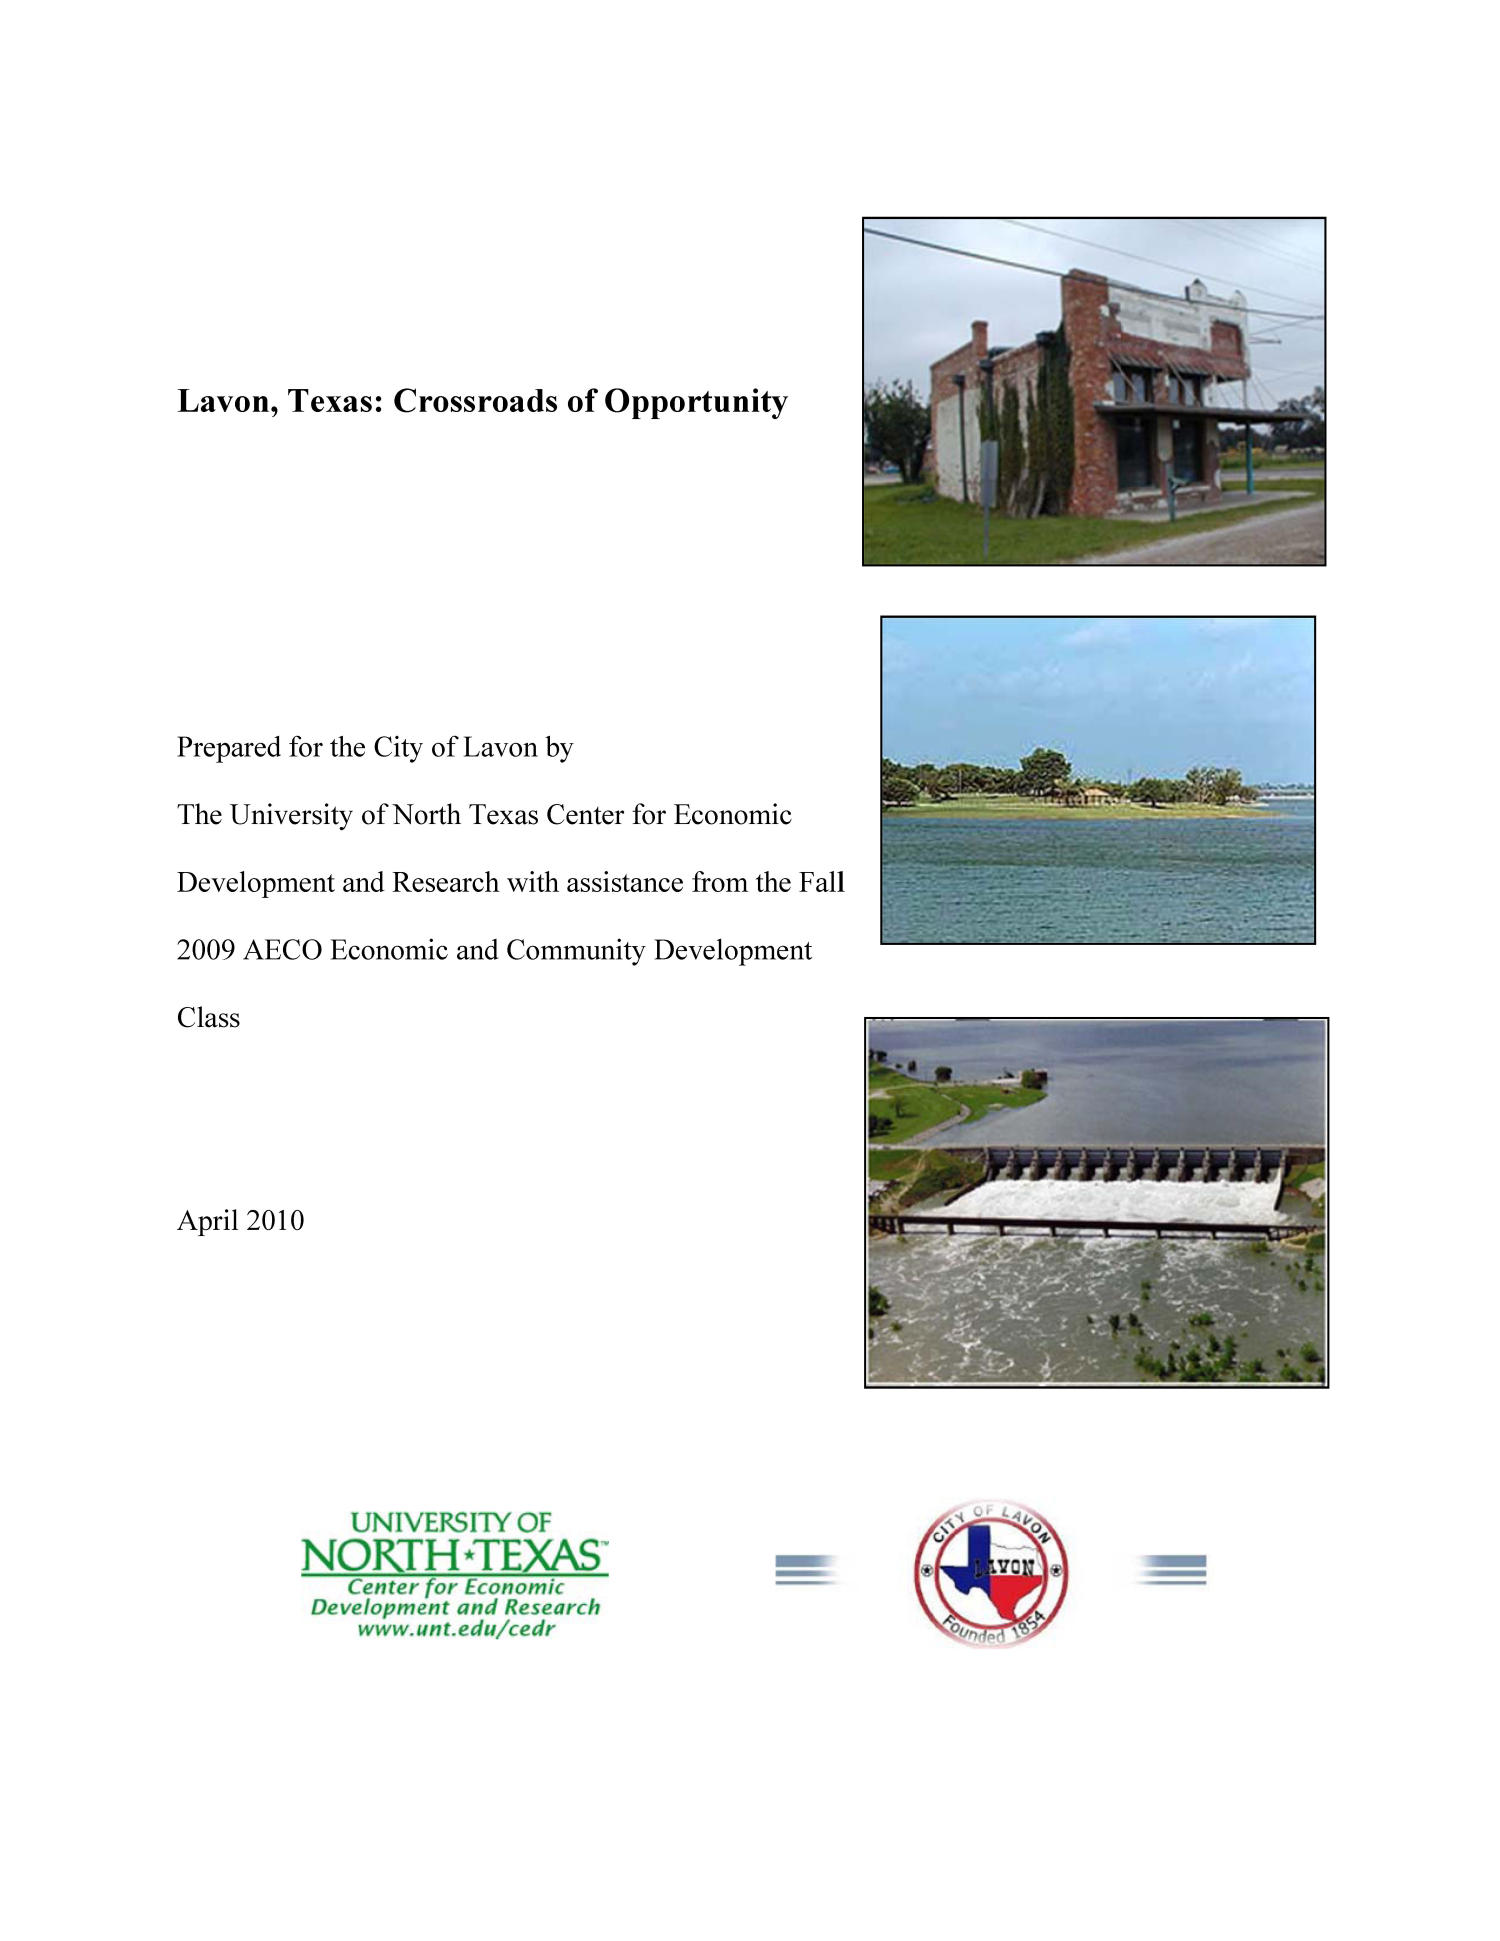 Lavon, Texas: Crossroads of Opportunity                                                                                                      Front Cover